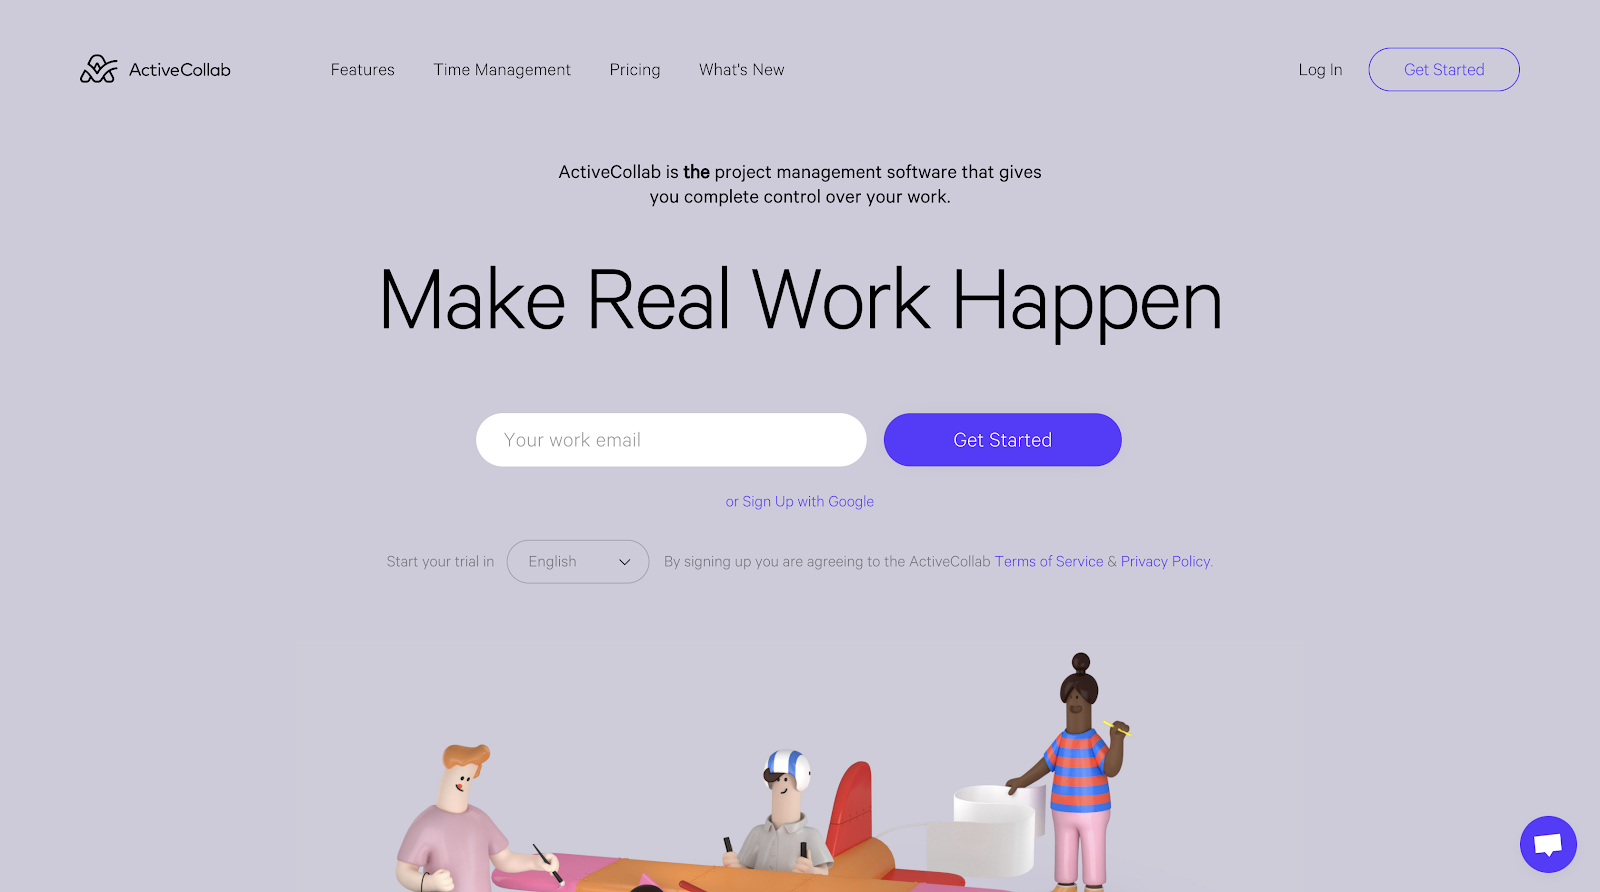 ActiveCollab - Make Real Work Happen